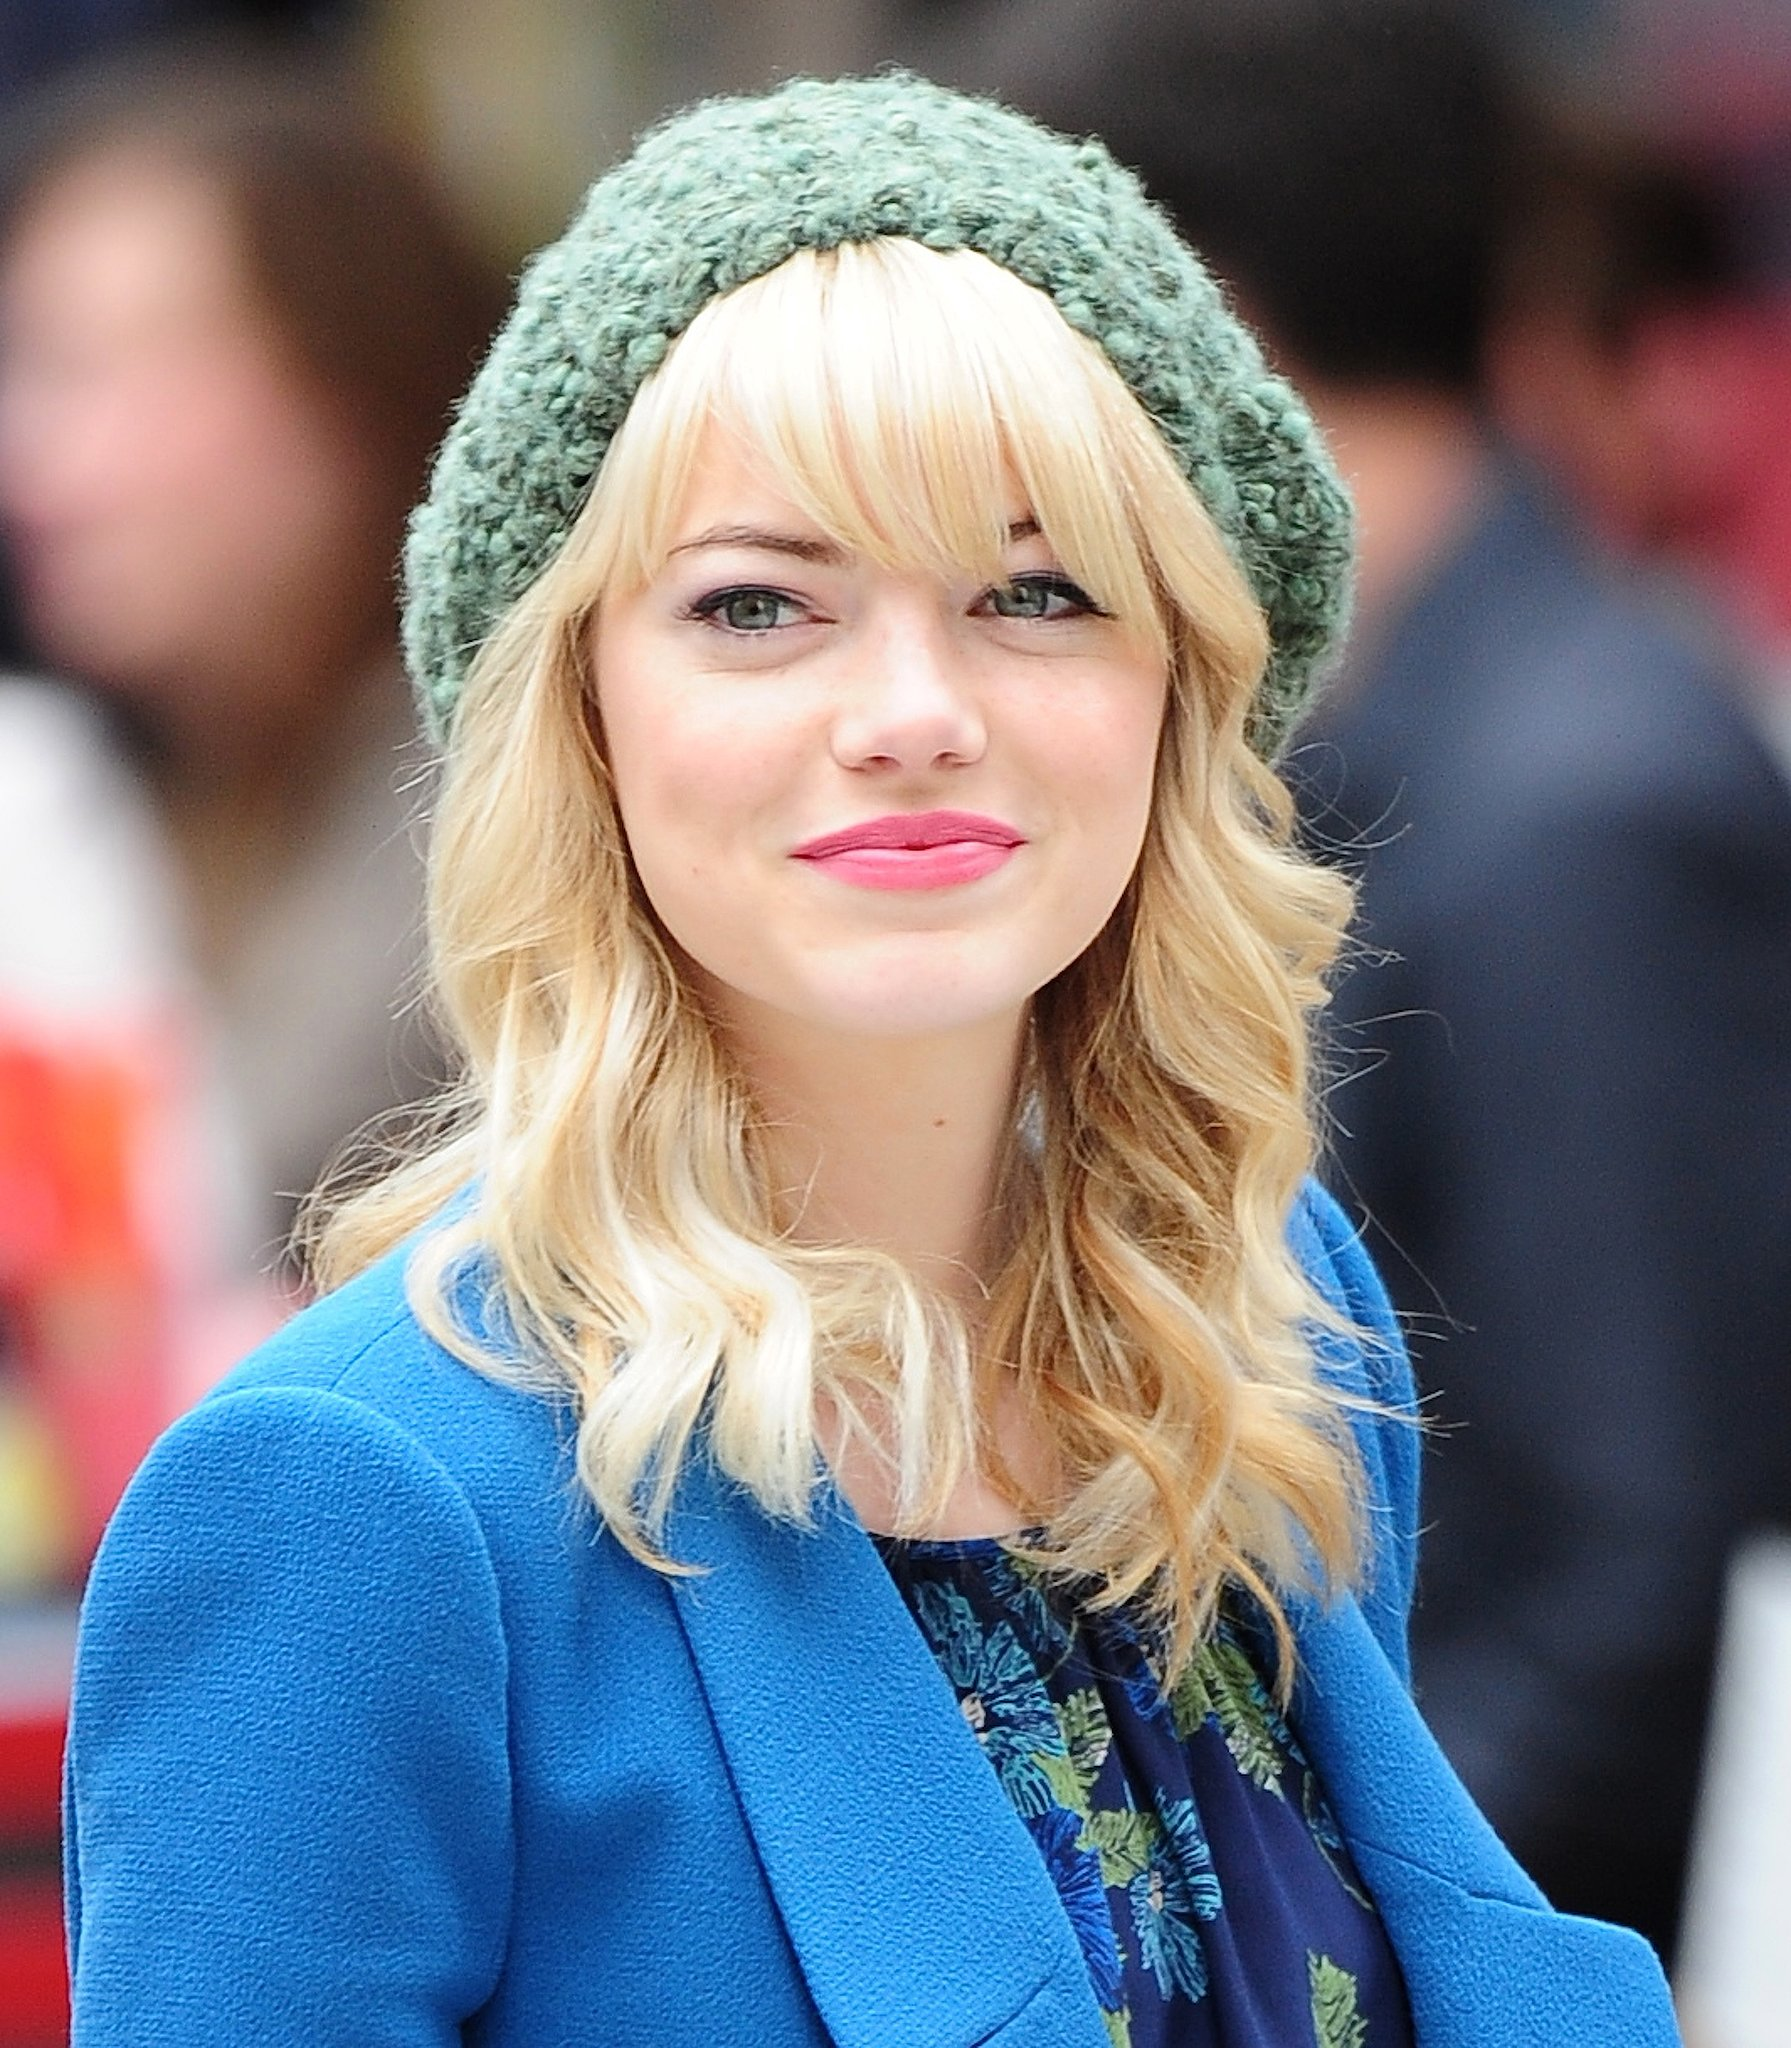 Wavy hair and bangs are an alluring combination on Emma Stone.